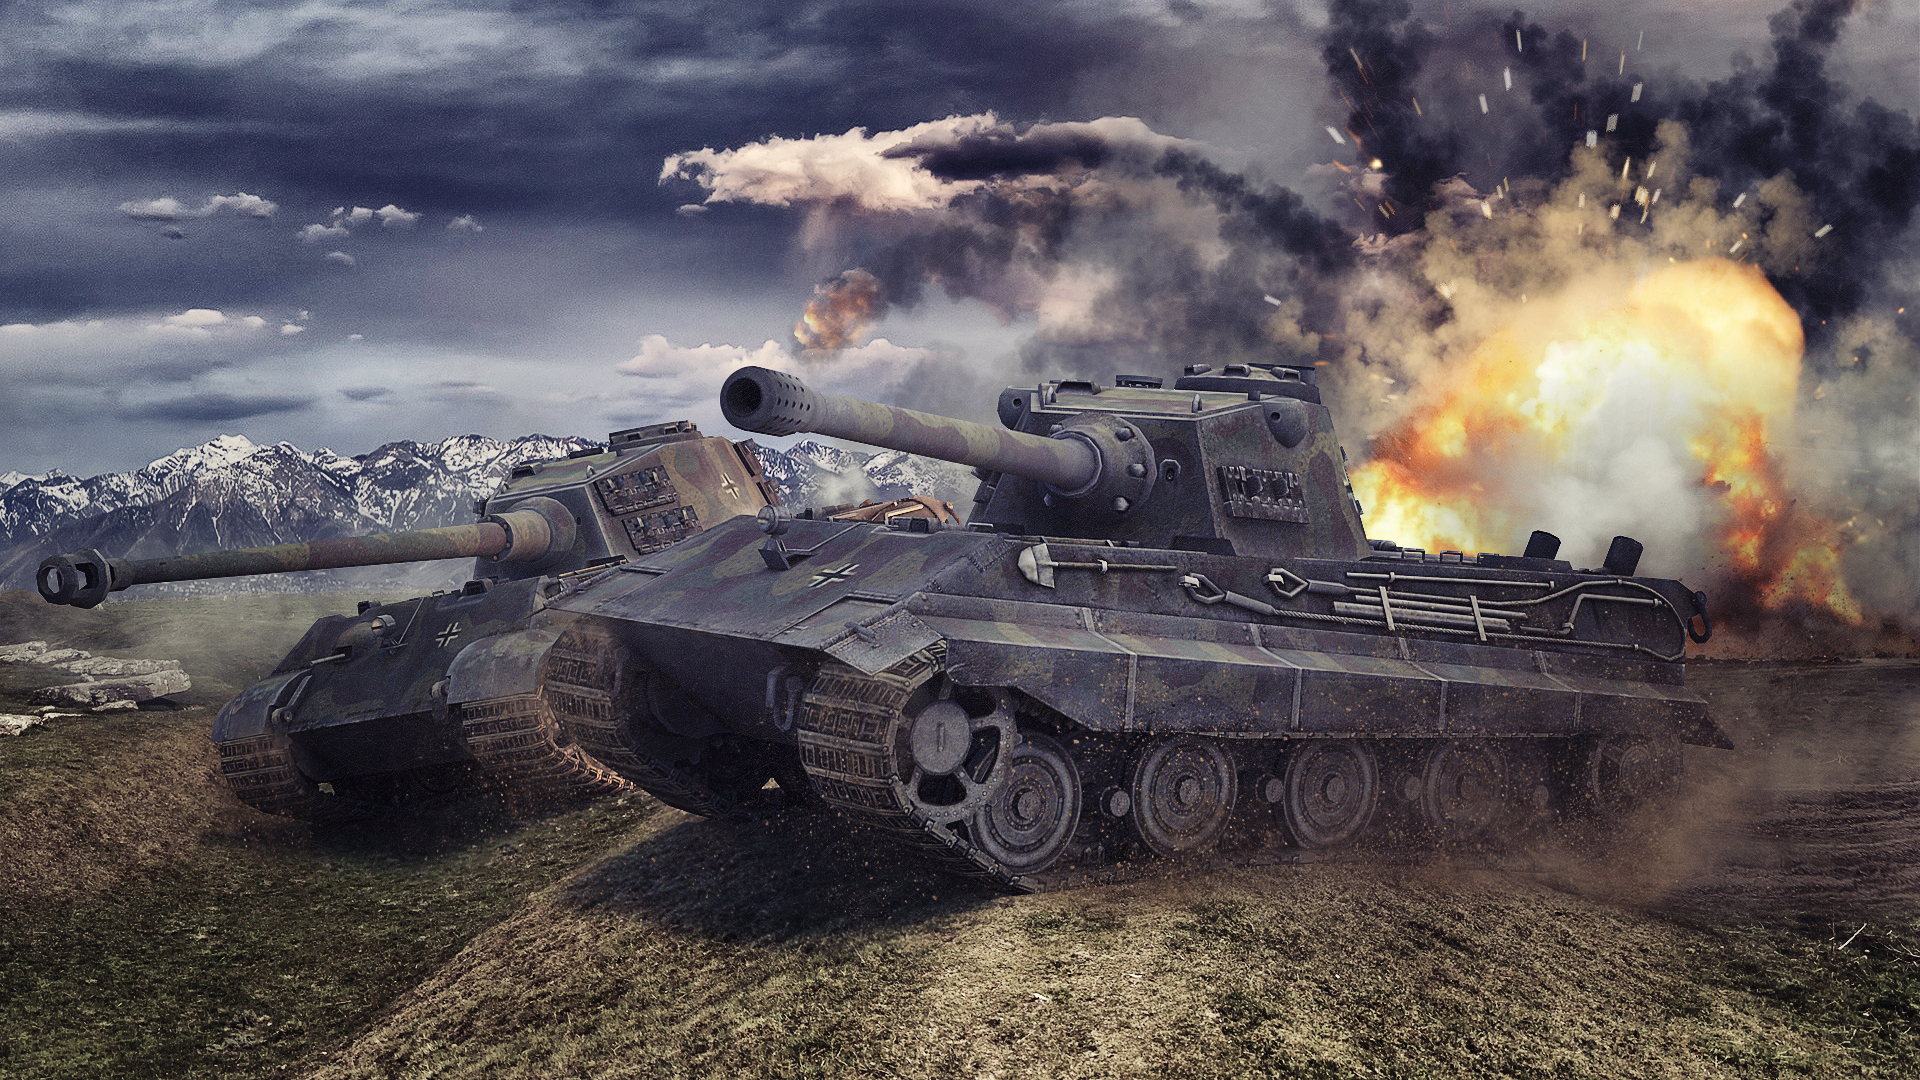 World Of Tanks Wallpapers Widescreen - fannone com